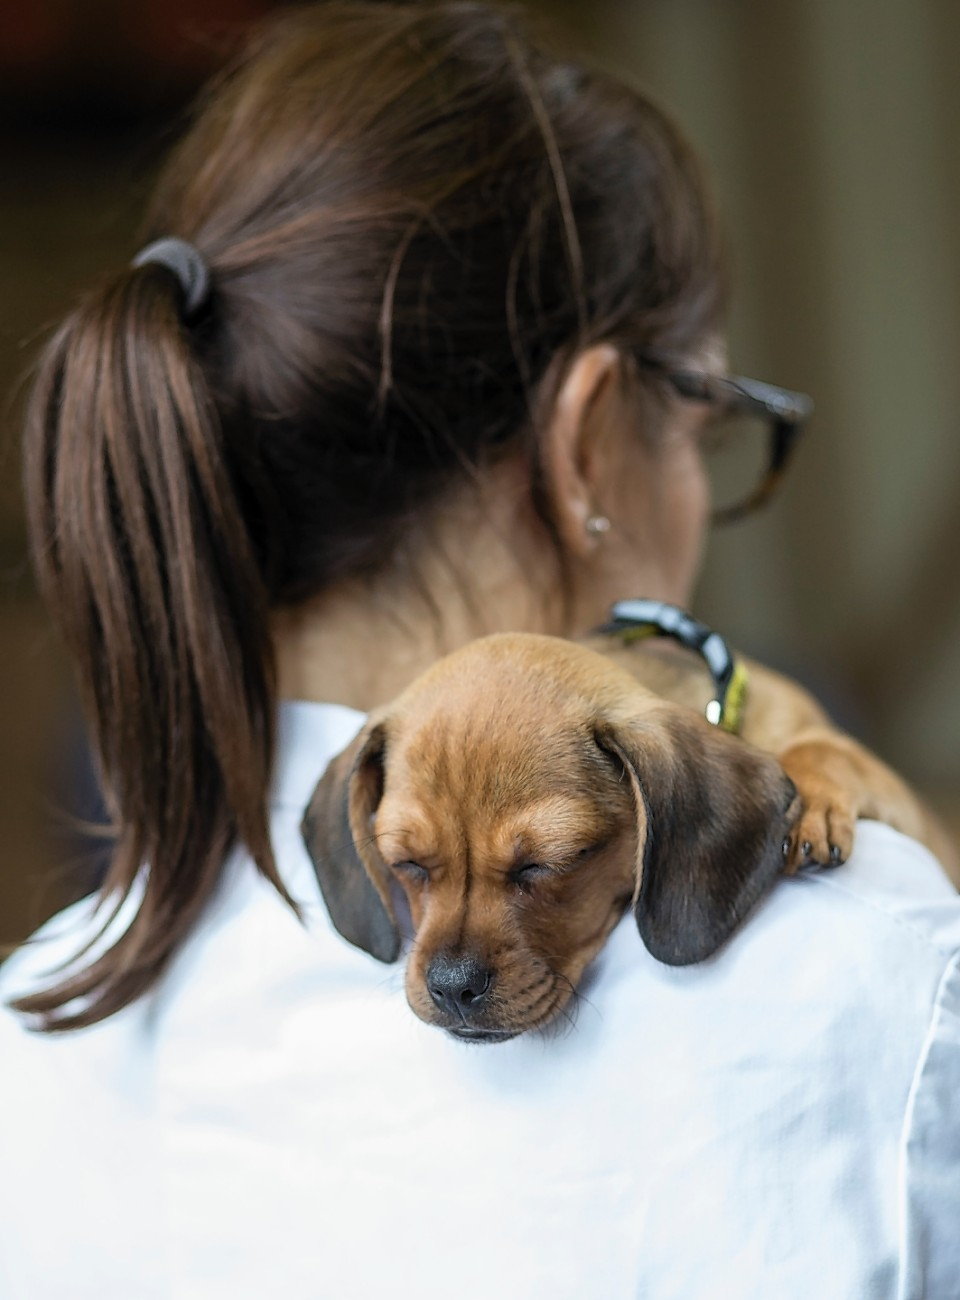 Many pet owners underestimate veterinary treatment costs